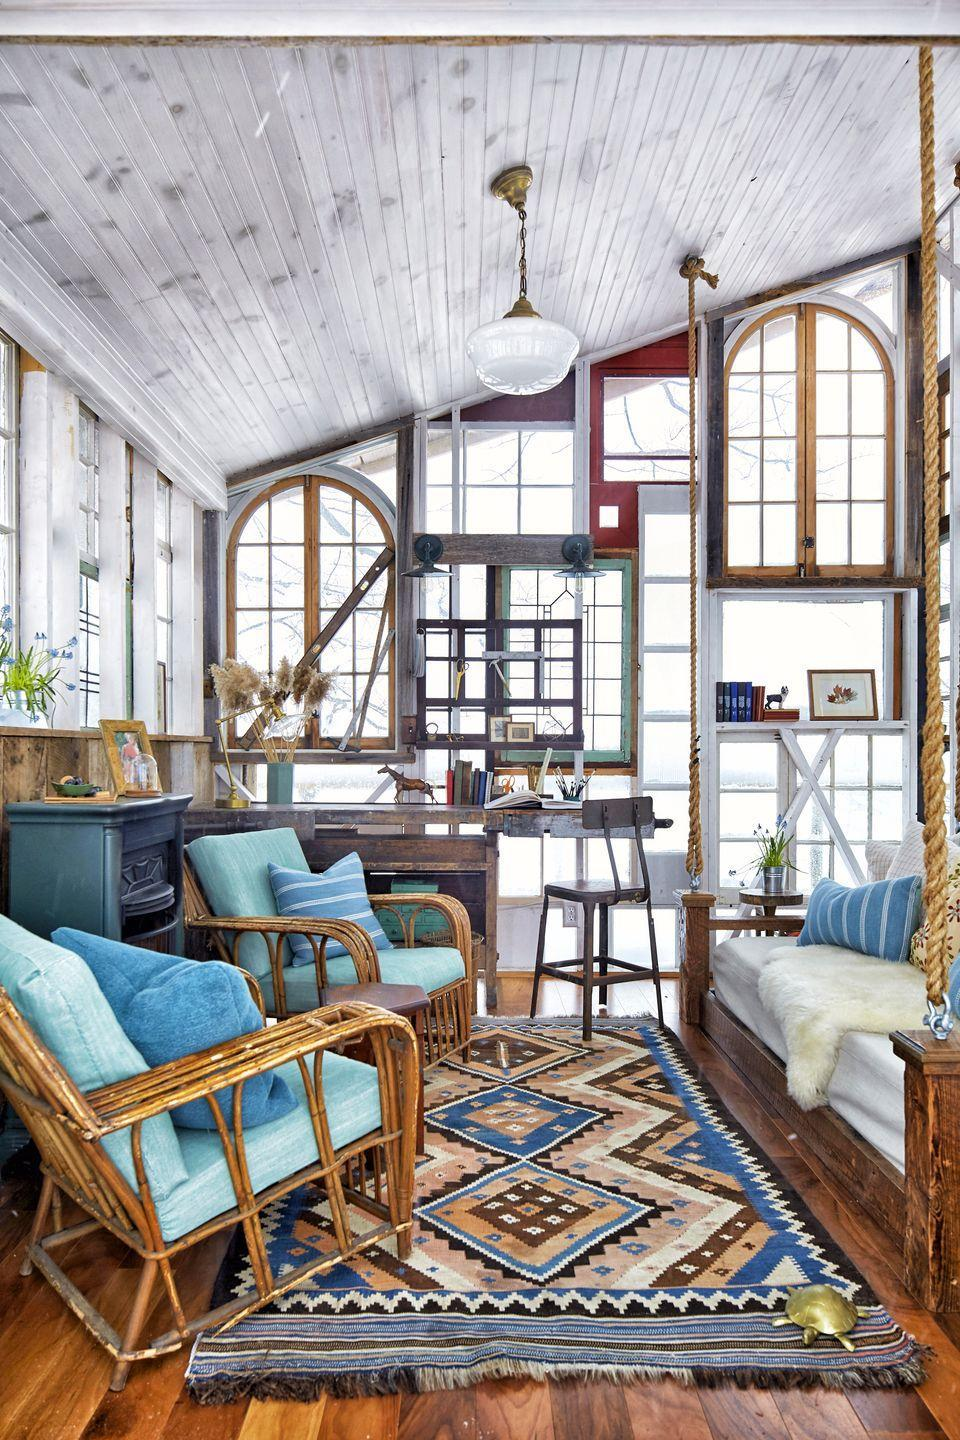 """<p>""""I joke that the structure is a family quilt of salvaged windows, because they came from important people in our lives,"""" Christina says. """"We got windows from my husband's, aunt, my mom, an old landlord..."""" </p><p><a class=""""link rapid-noclick-resp"""" href=""""https://www.amazon.com/Life-Changing-Magic-Tidying-Decluttering-Organizing/dp/1607747308?tag=syn-yahoo-20&ascsubtag=%5Bartid%7C10072.g.35047961%5Bsrc%7Cyahoo-us"""" rel=""""nofollow noopener"""" target=""""_blank"""" data-ylk=""""slk:SHOP BOOKS ABOUT TIDYING"""">SHOP BOOKS ABOUT TIDYING</a></p>"""